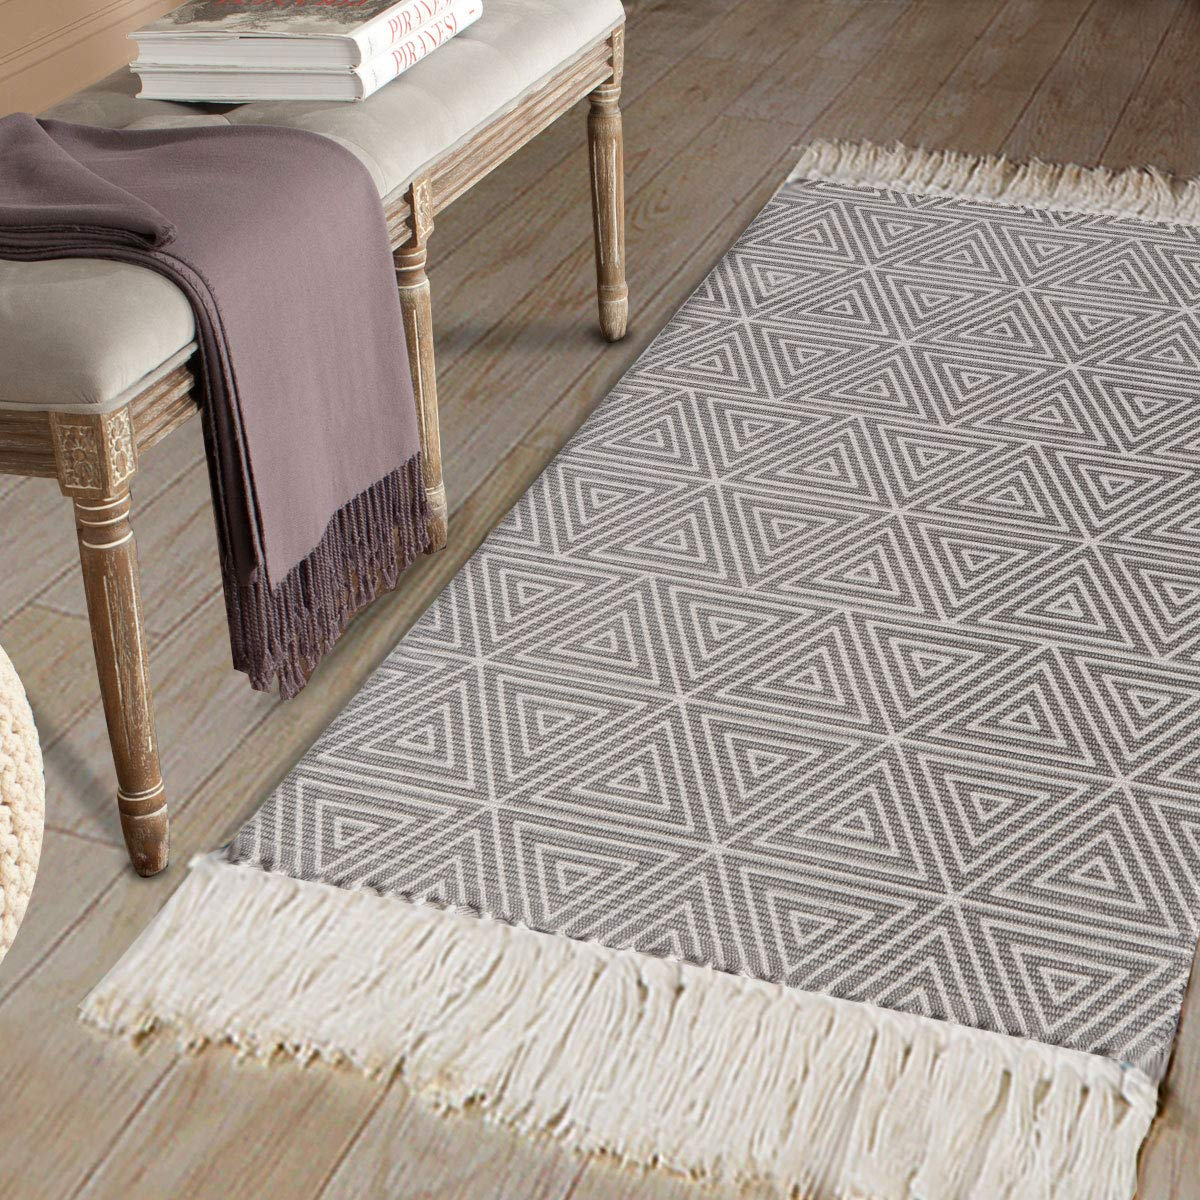 "Amazon.com: Cotton Printed Area Rug, Seavish Decorative Hand Woven Runner Carpet, Grey Triangle Kilim Rugs Throw Rug 2' x 4'4"" for Bedroom Living Room Dorm: ..."